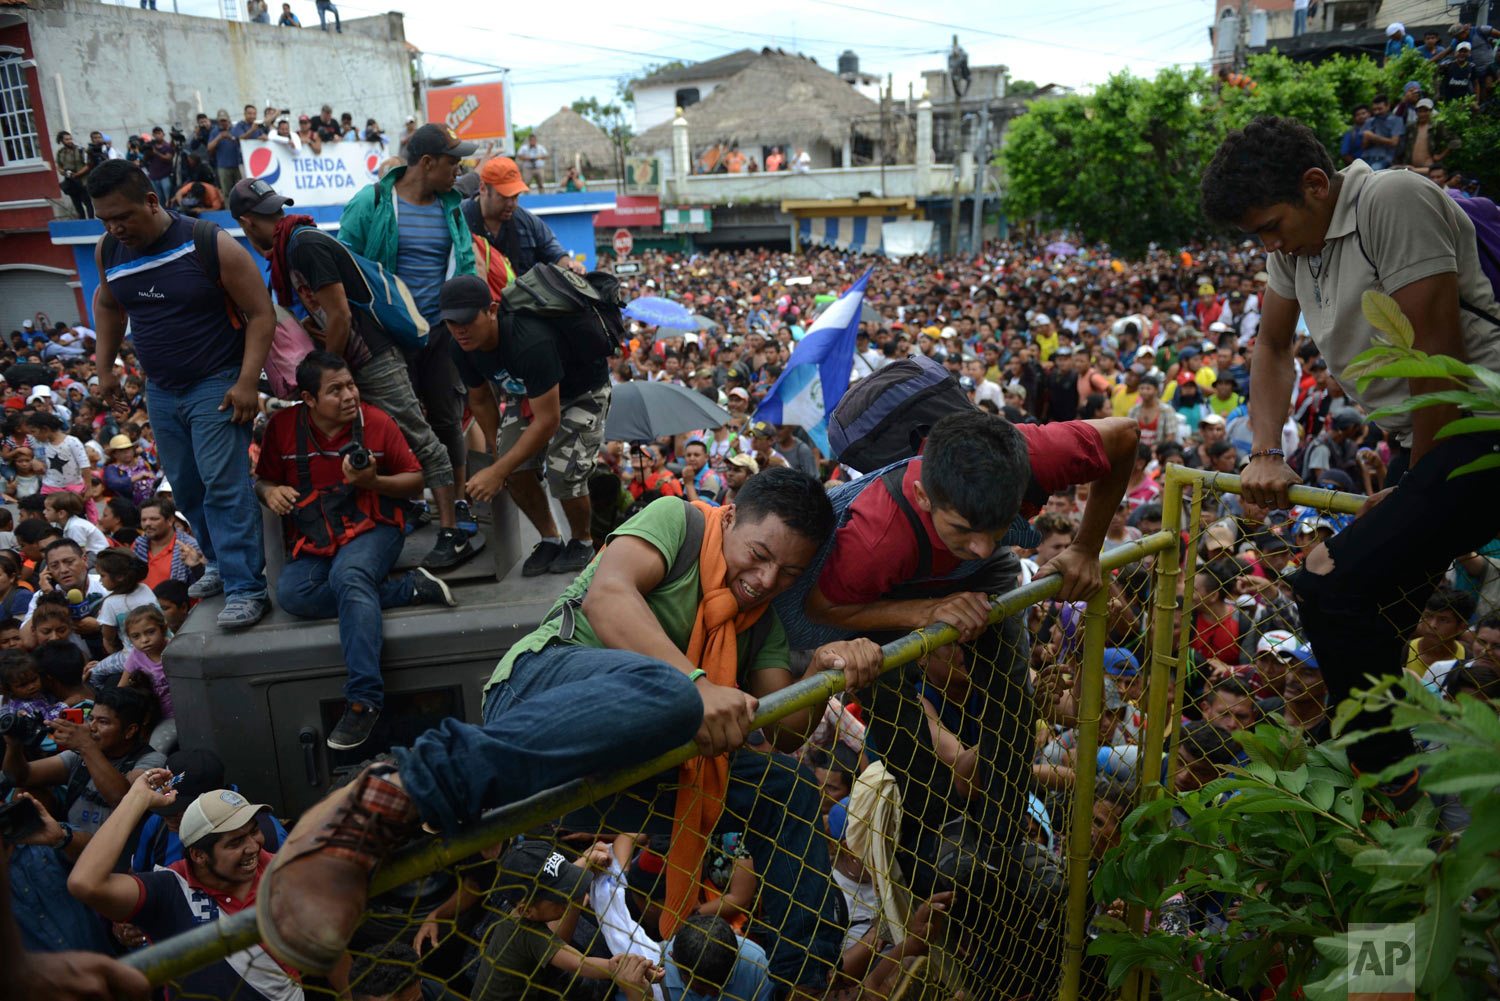 Thousands of Honduran migrants gather at a fence as some climb towards Mexico in Tecun Uman, Guatemala, Friday, Oct. 19, 2018. Migrants broke down the gates at the border crossing and began streaming toward a bridge into Mexico. After arriving at the tall, yellow metal fence some clambered atop it and on U.S.-donated military jeeps. Young men began violently tugging on the barrier and succeeded in tearing it down. (AP Photo/Oliver de Ros)